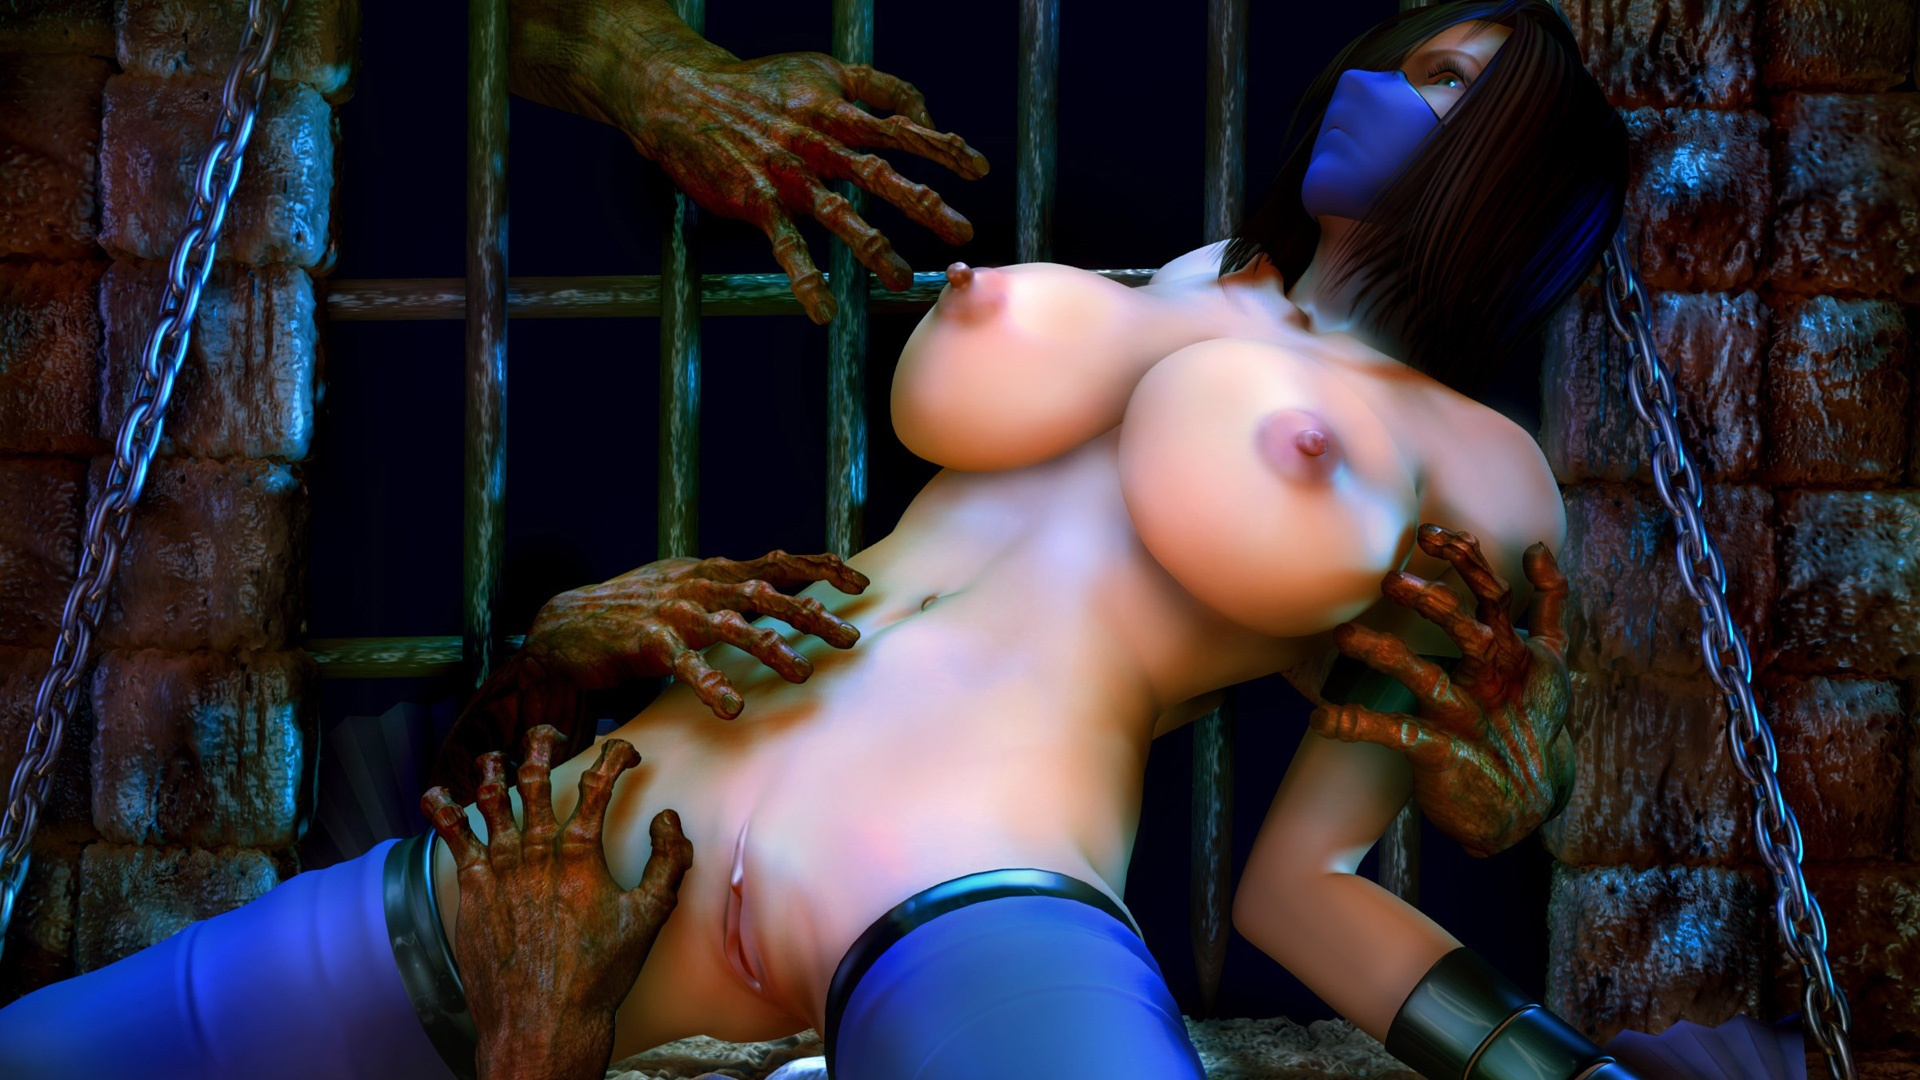 Nude Mortal Kombat Female Warrior Attacked And Raped By